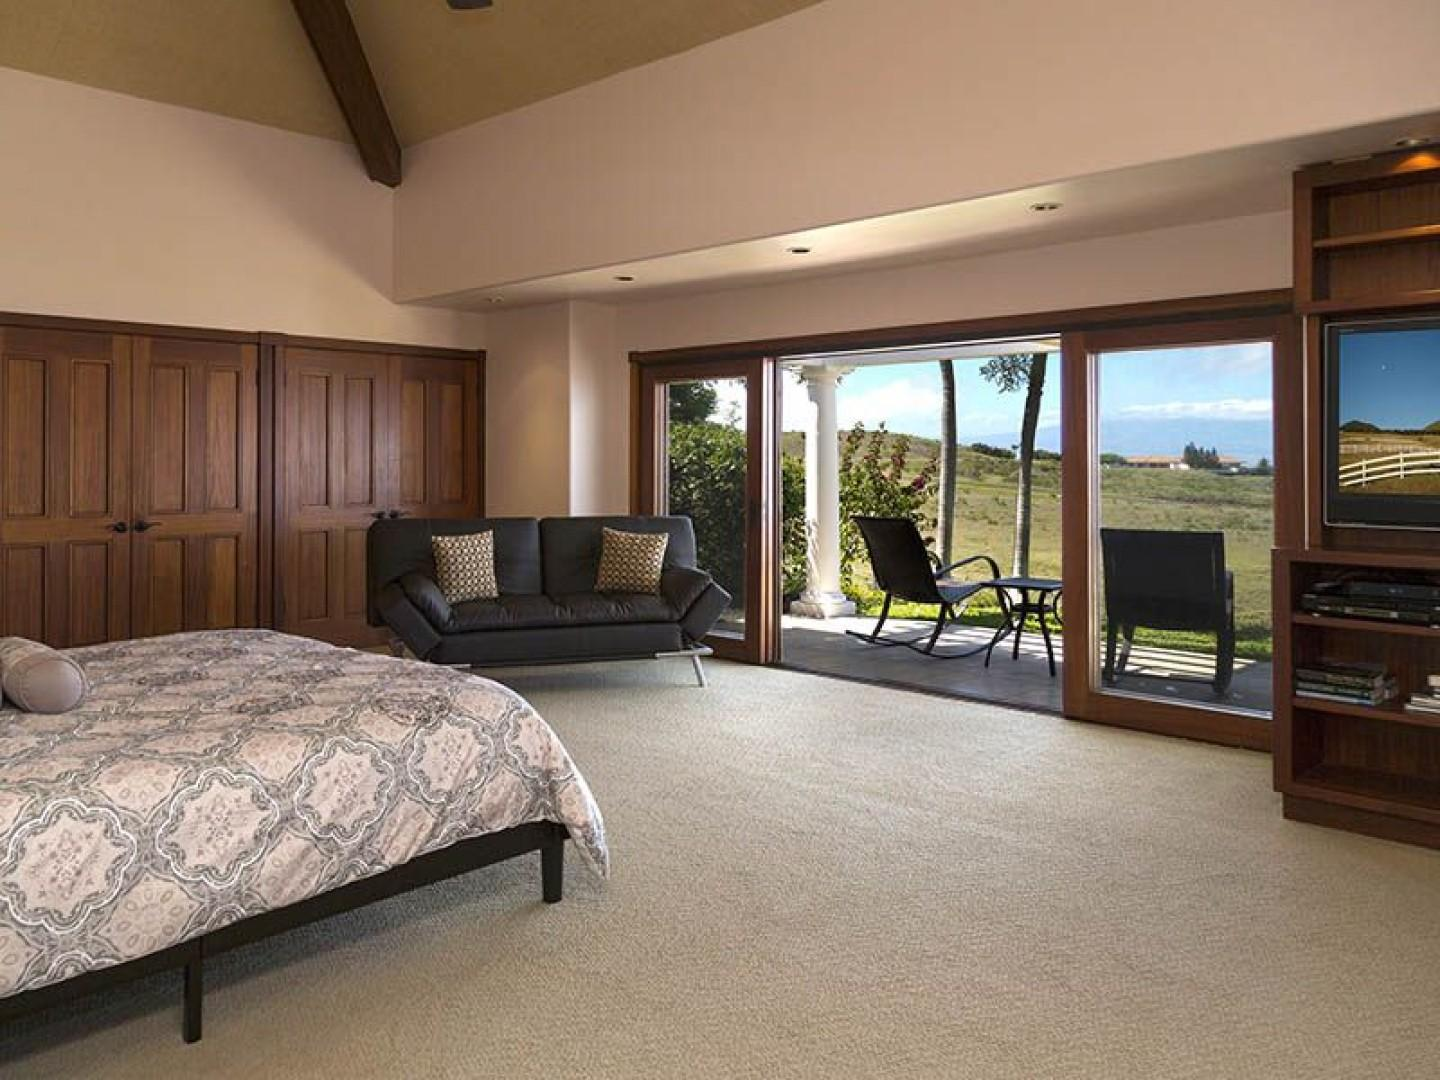 South master has a large private lanai and is very spacious